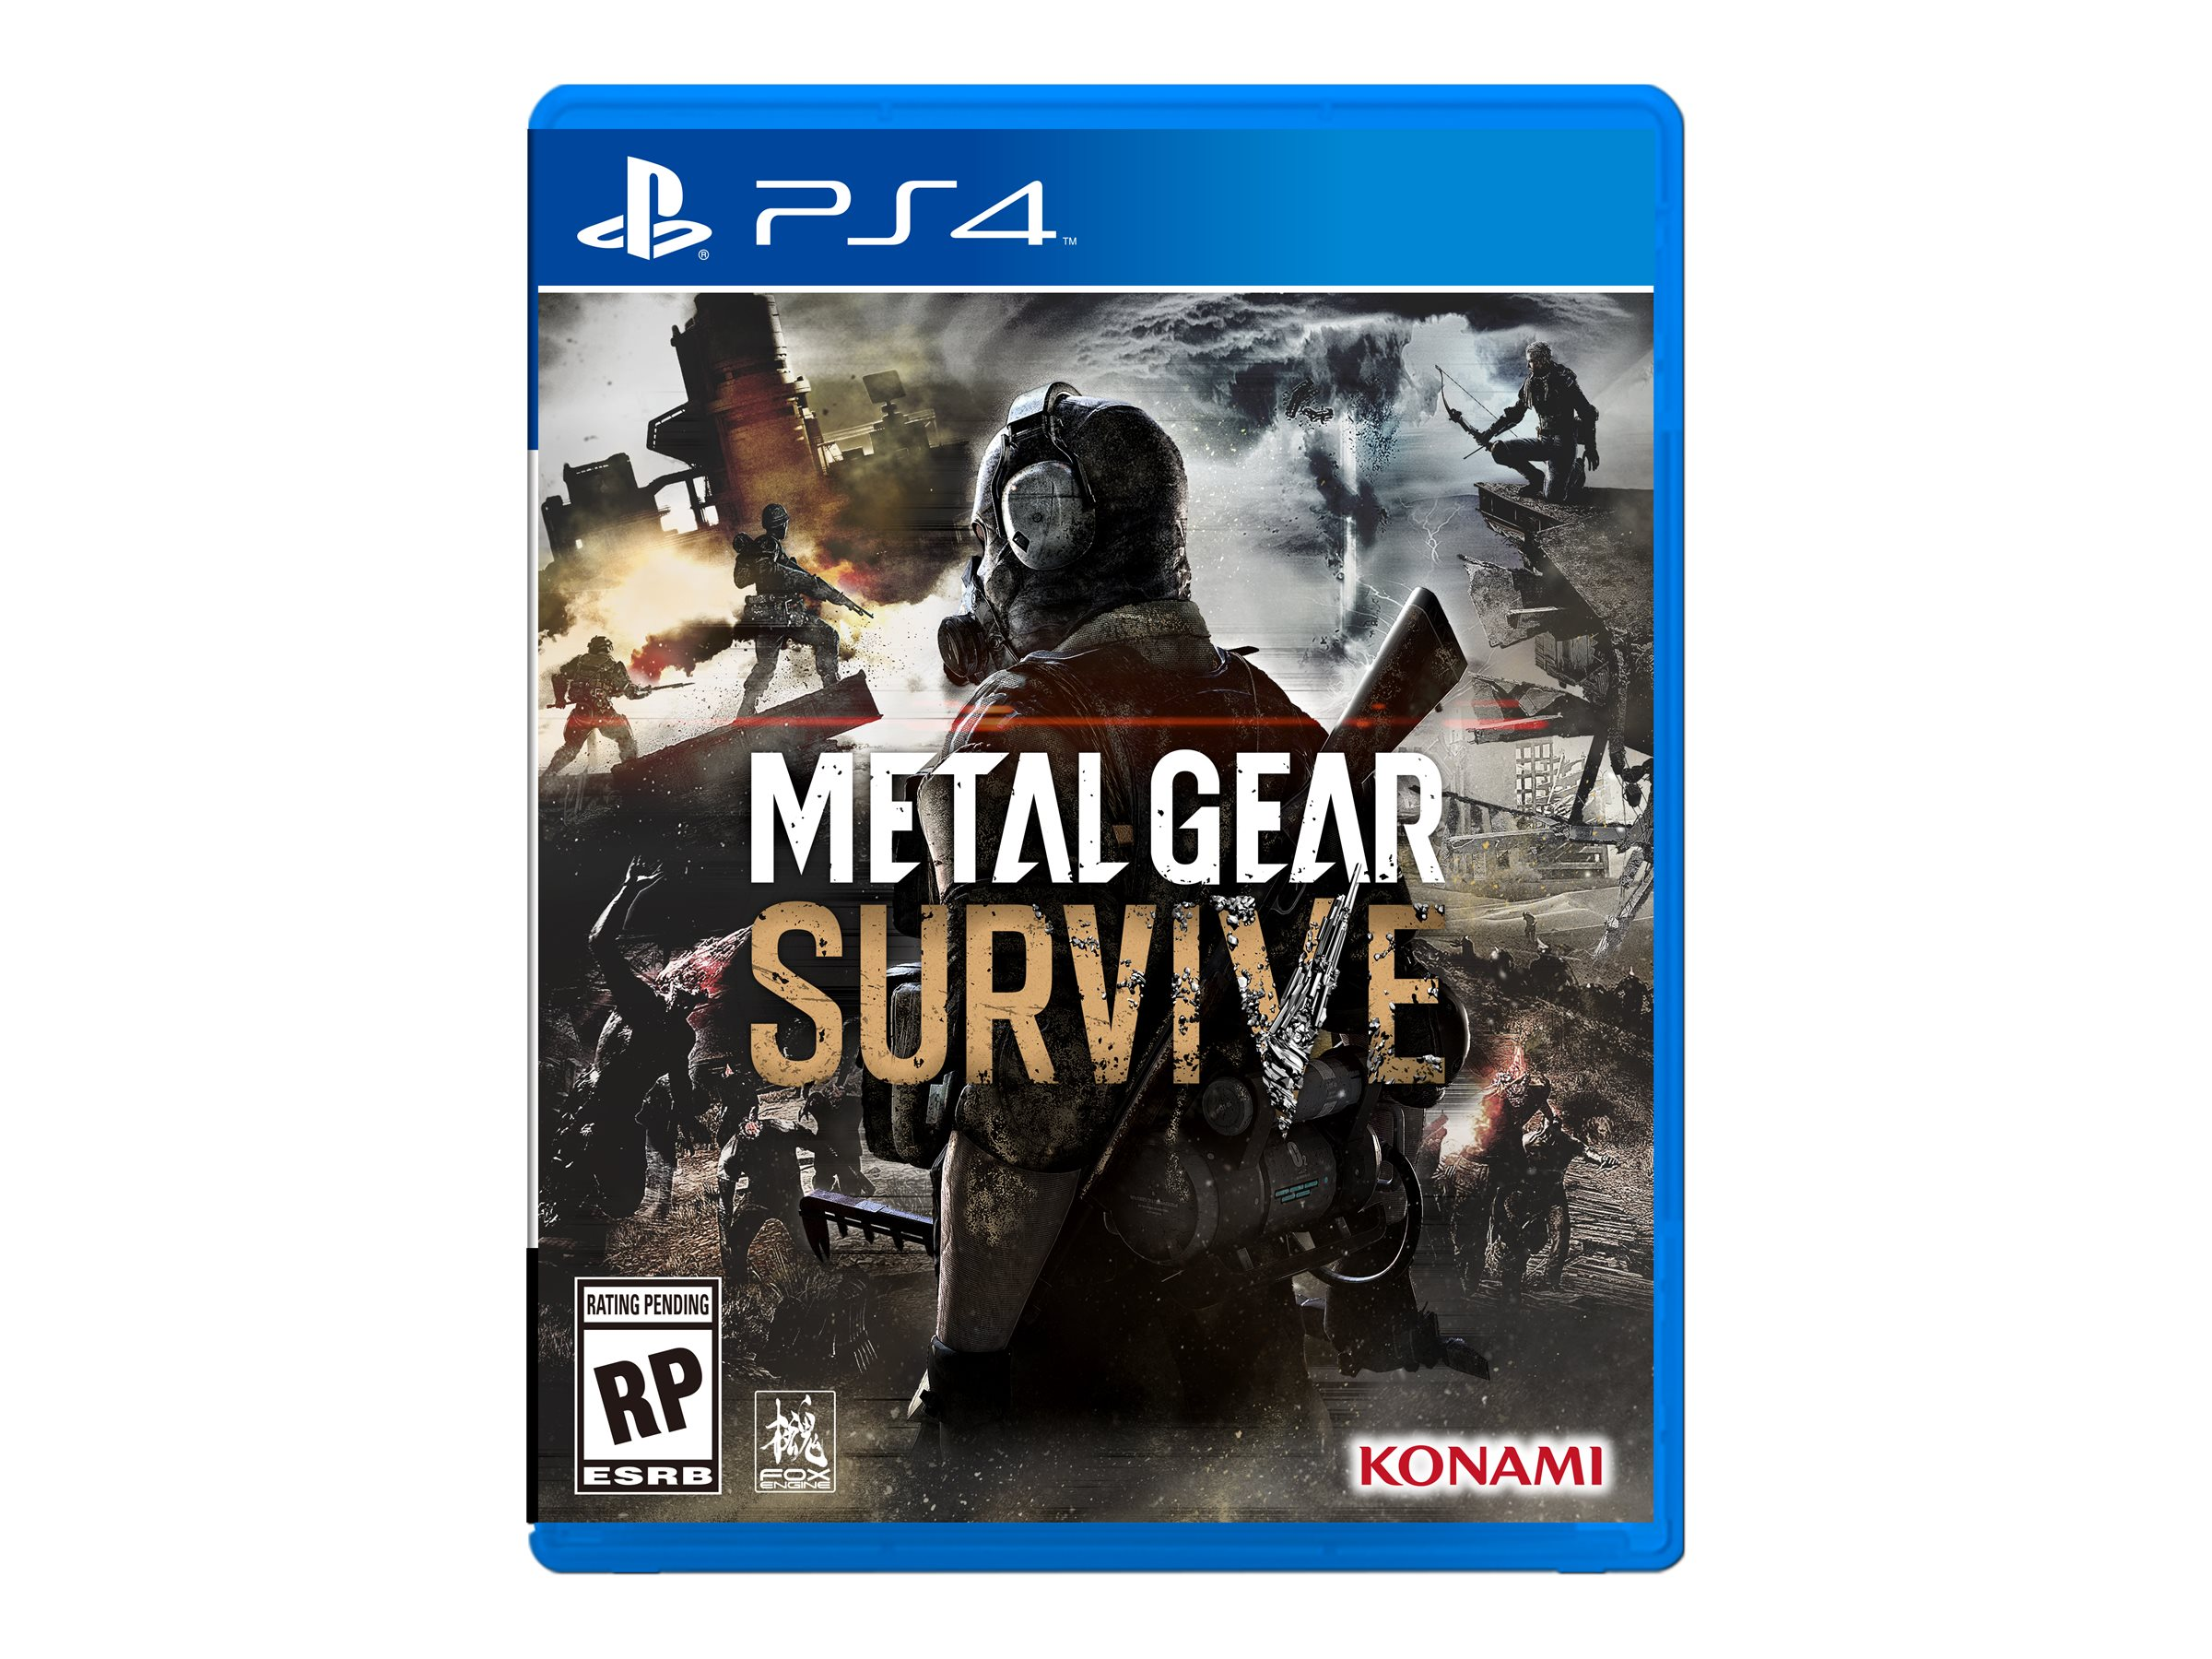 Image for Metal Gear Survive - Sony Playstation 4 from Circuit City